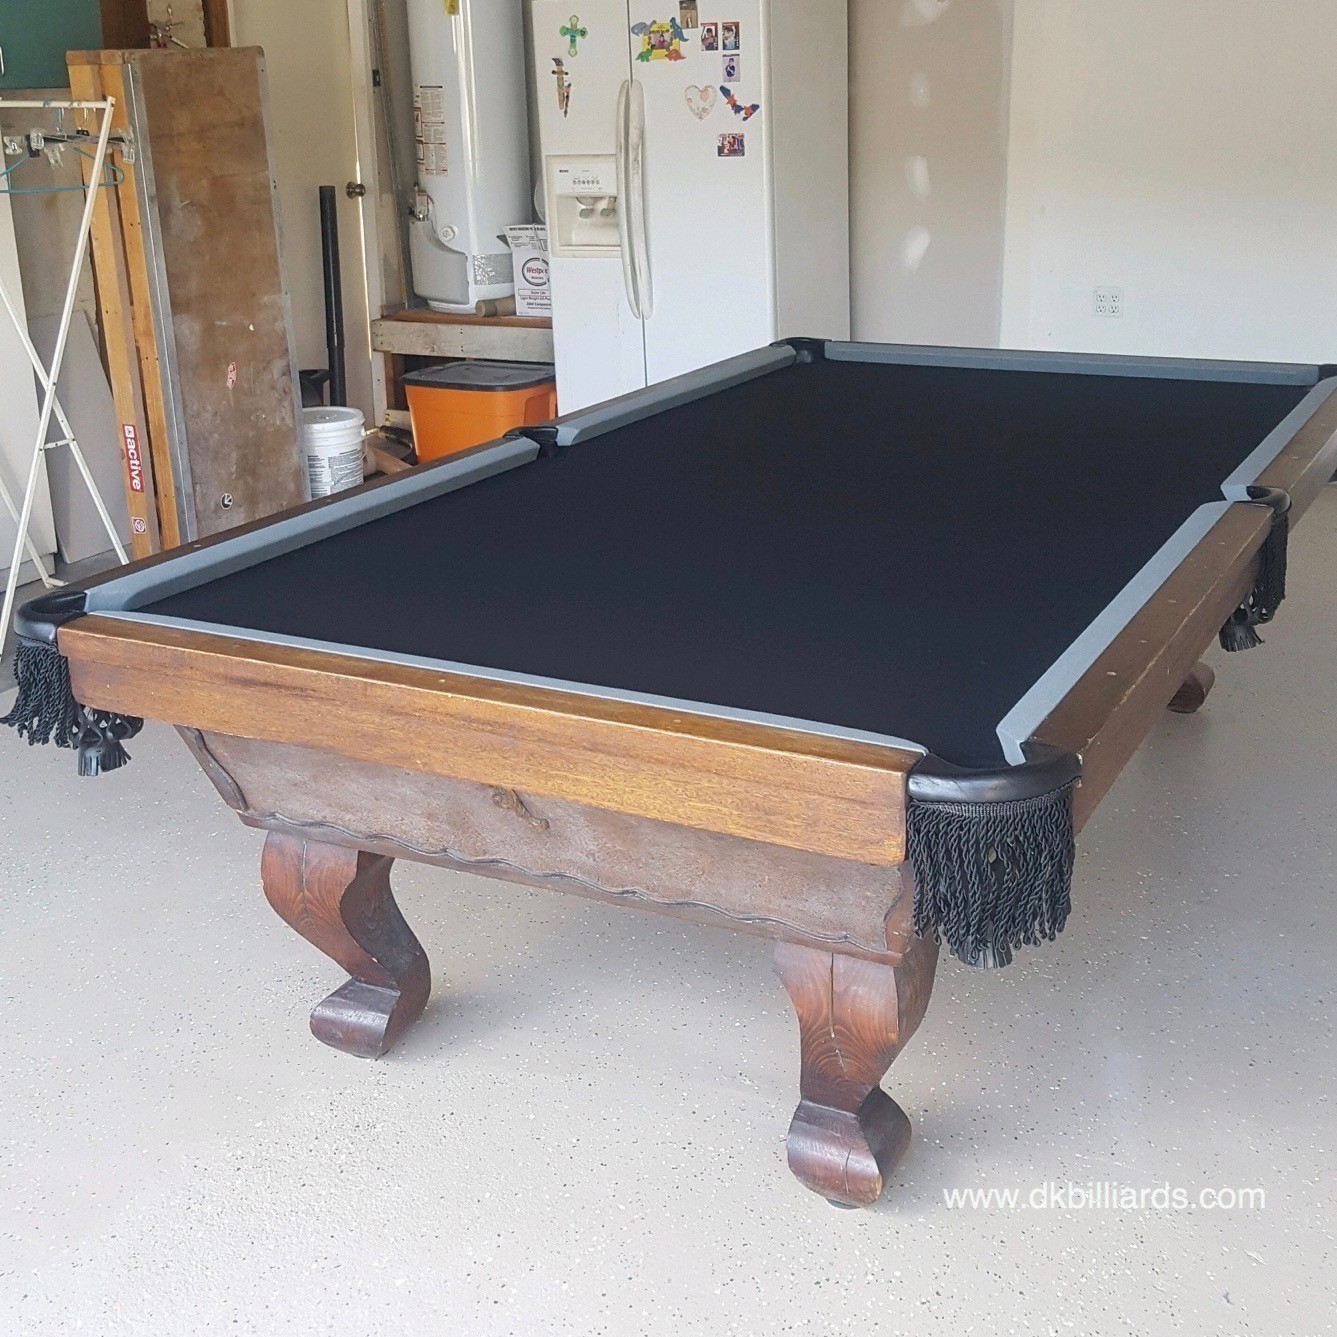 Product Categories. Uncategorized · Pool Tables · Accessories ...